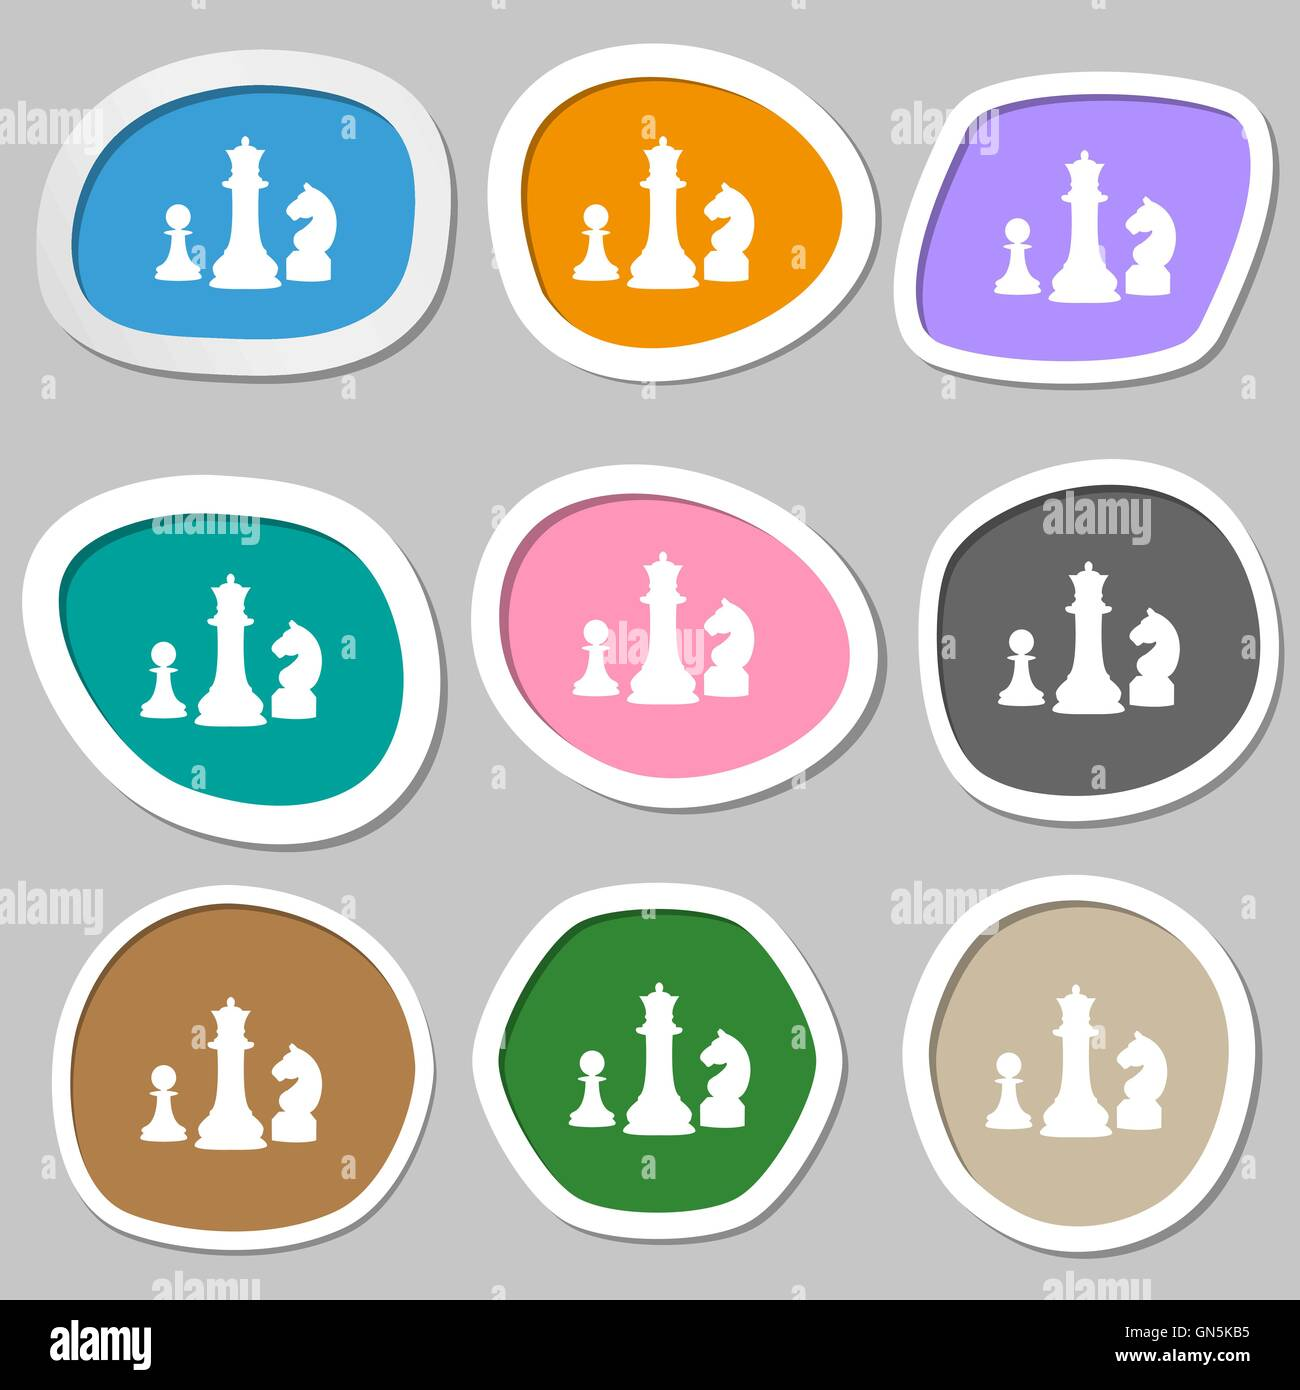 Chess Game Symbols Multicolored Paper Stickers Vector Stock Vector